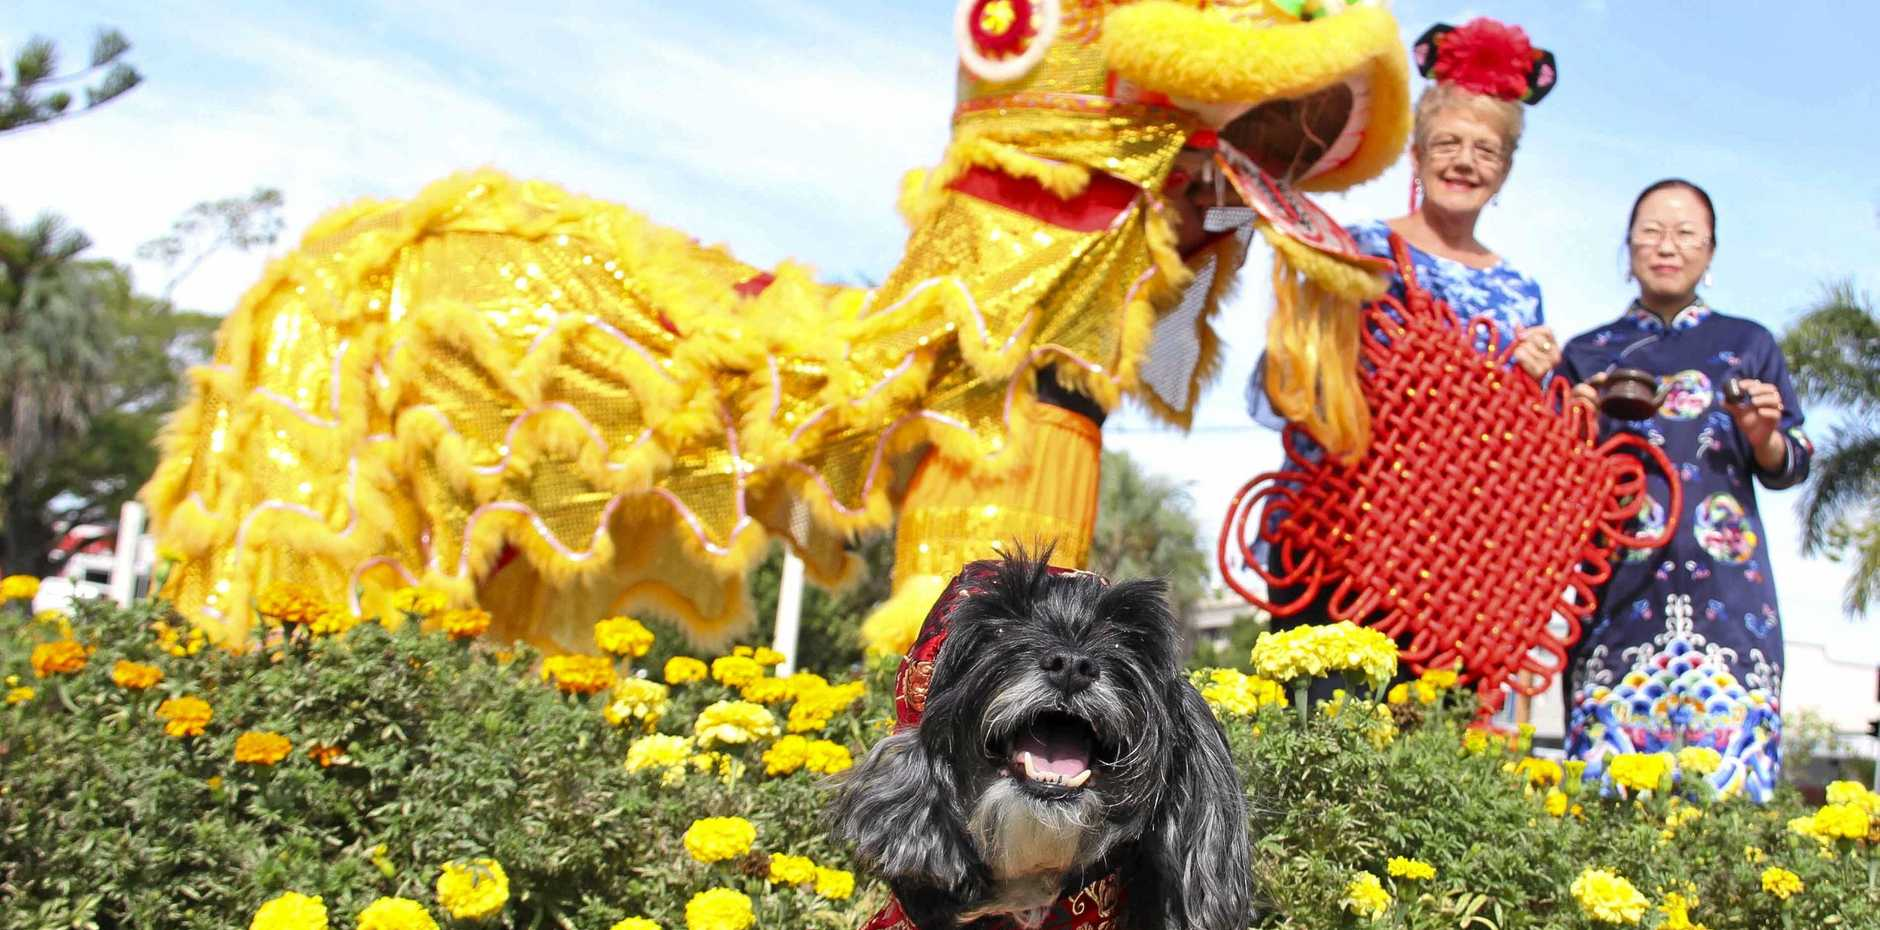 DOGS' DAY: The Year of the Dog will be welcomed with massive celebrations in Bundy.